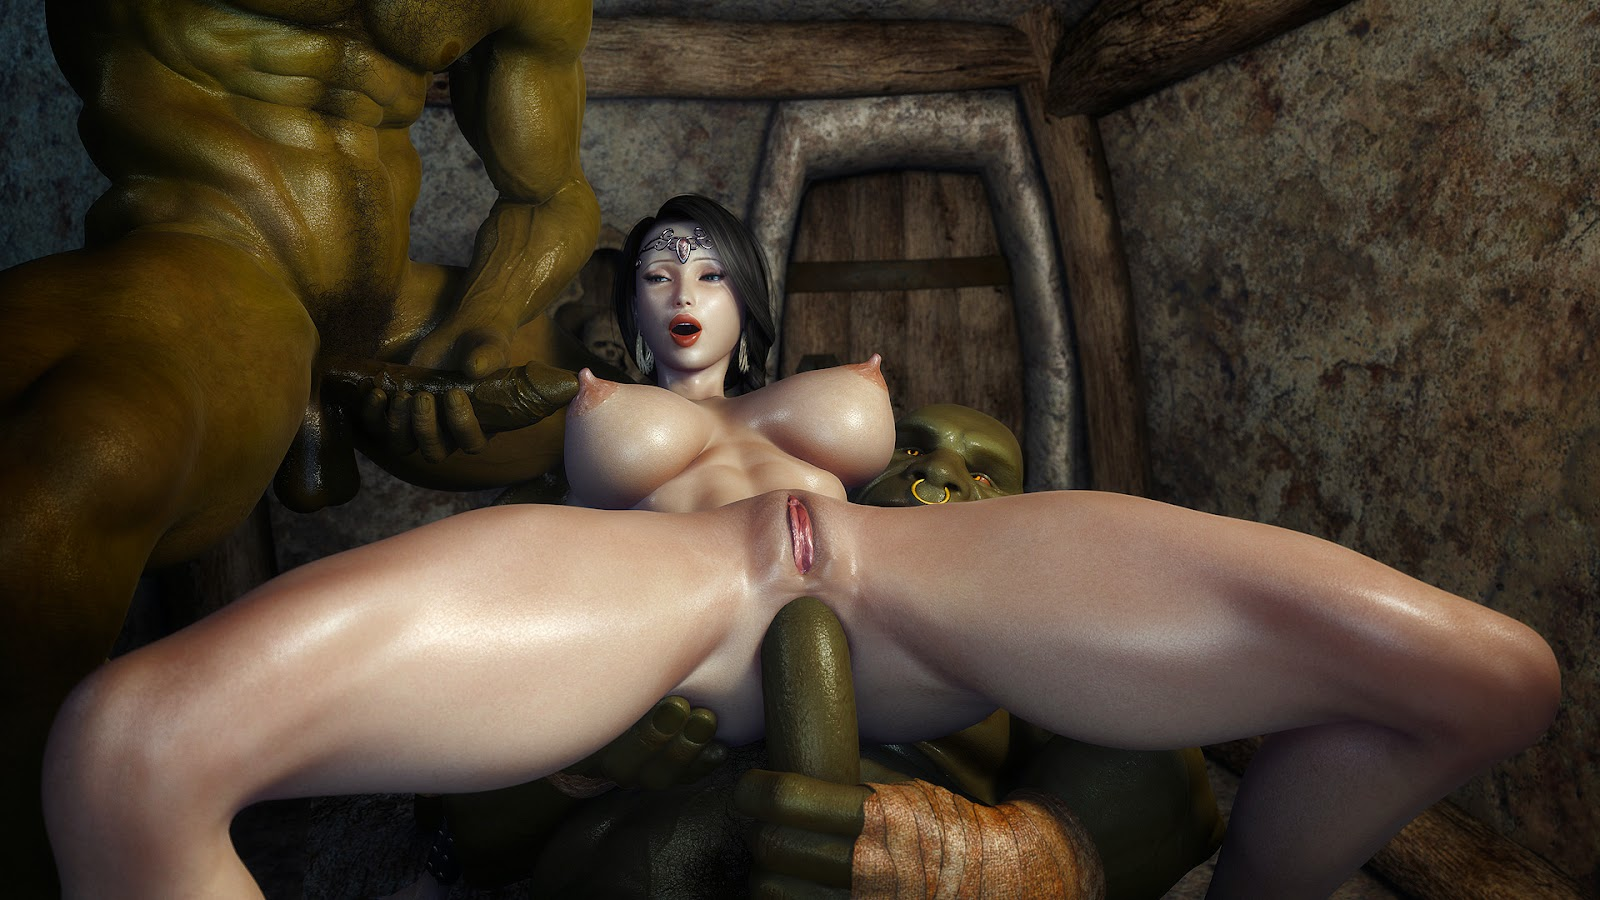 Ogre porn video exposed clips